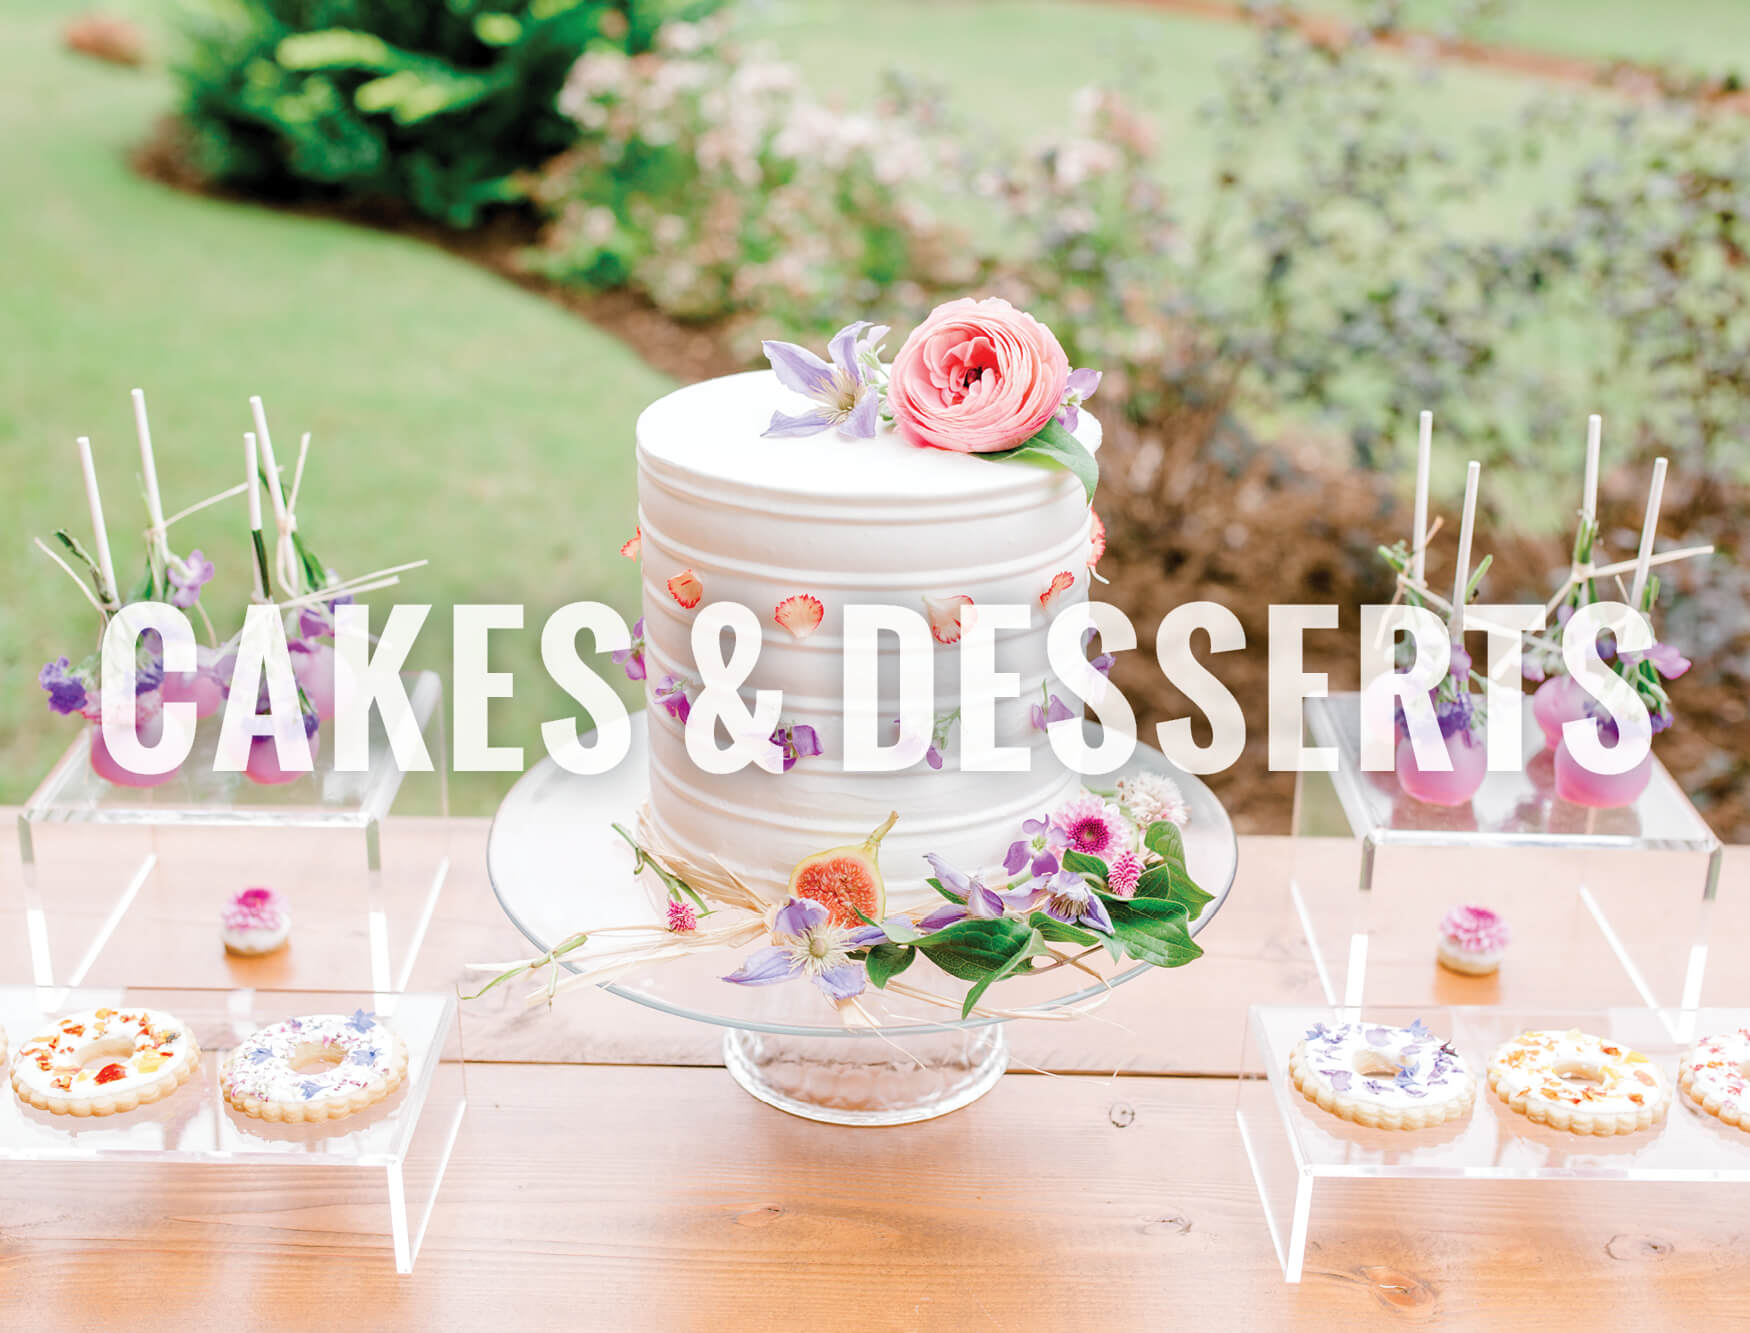 Cakes_category